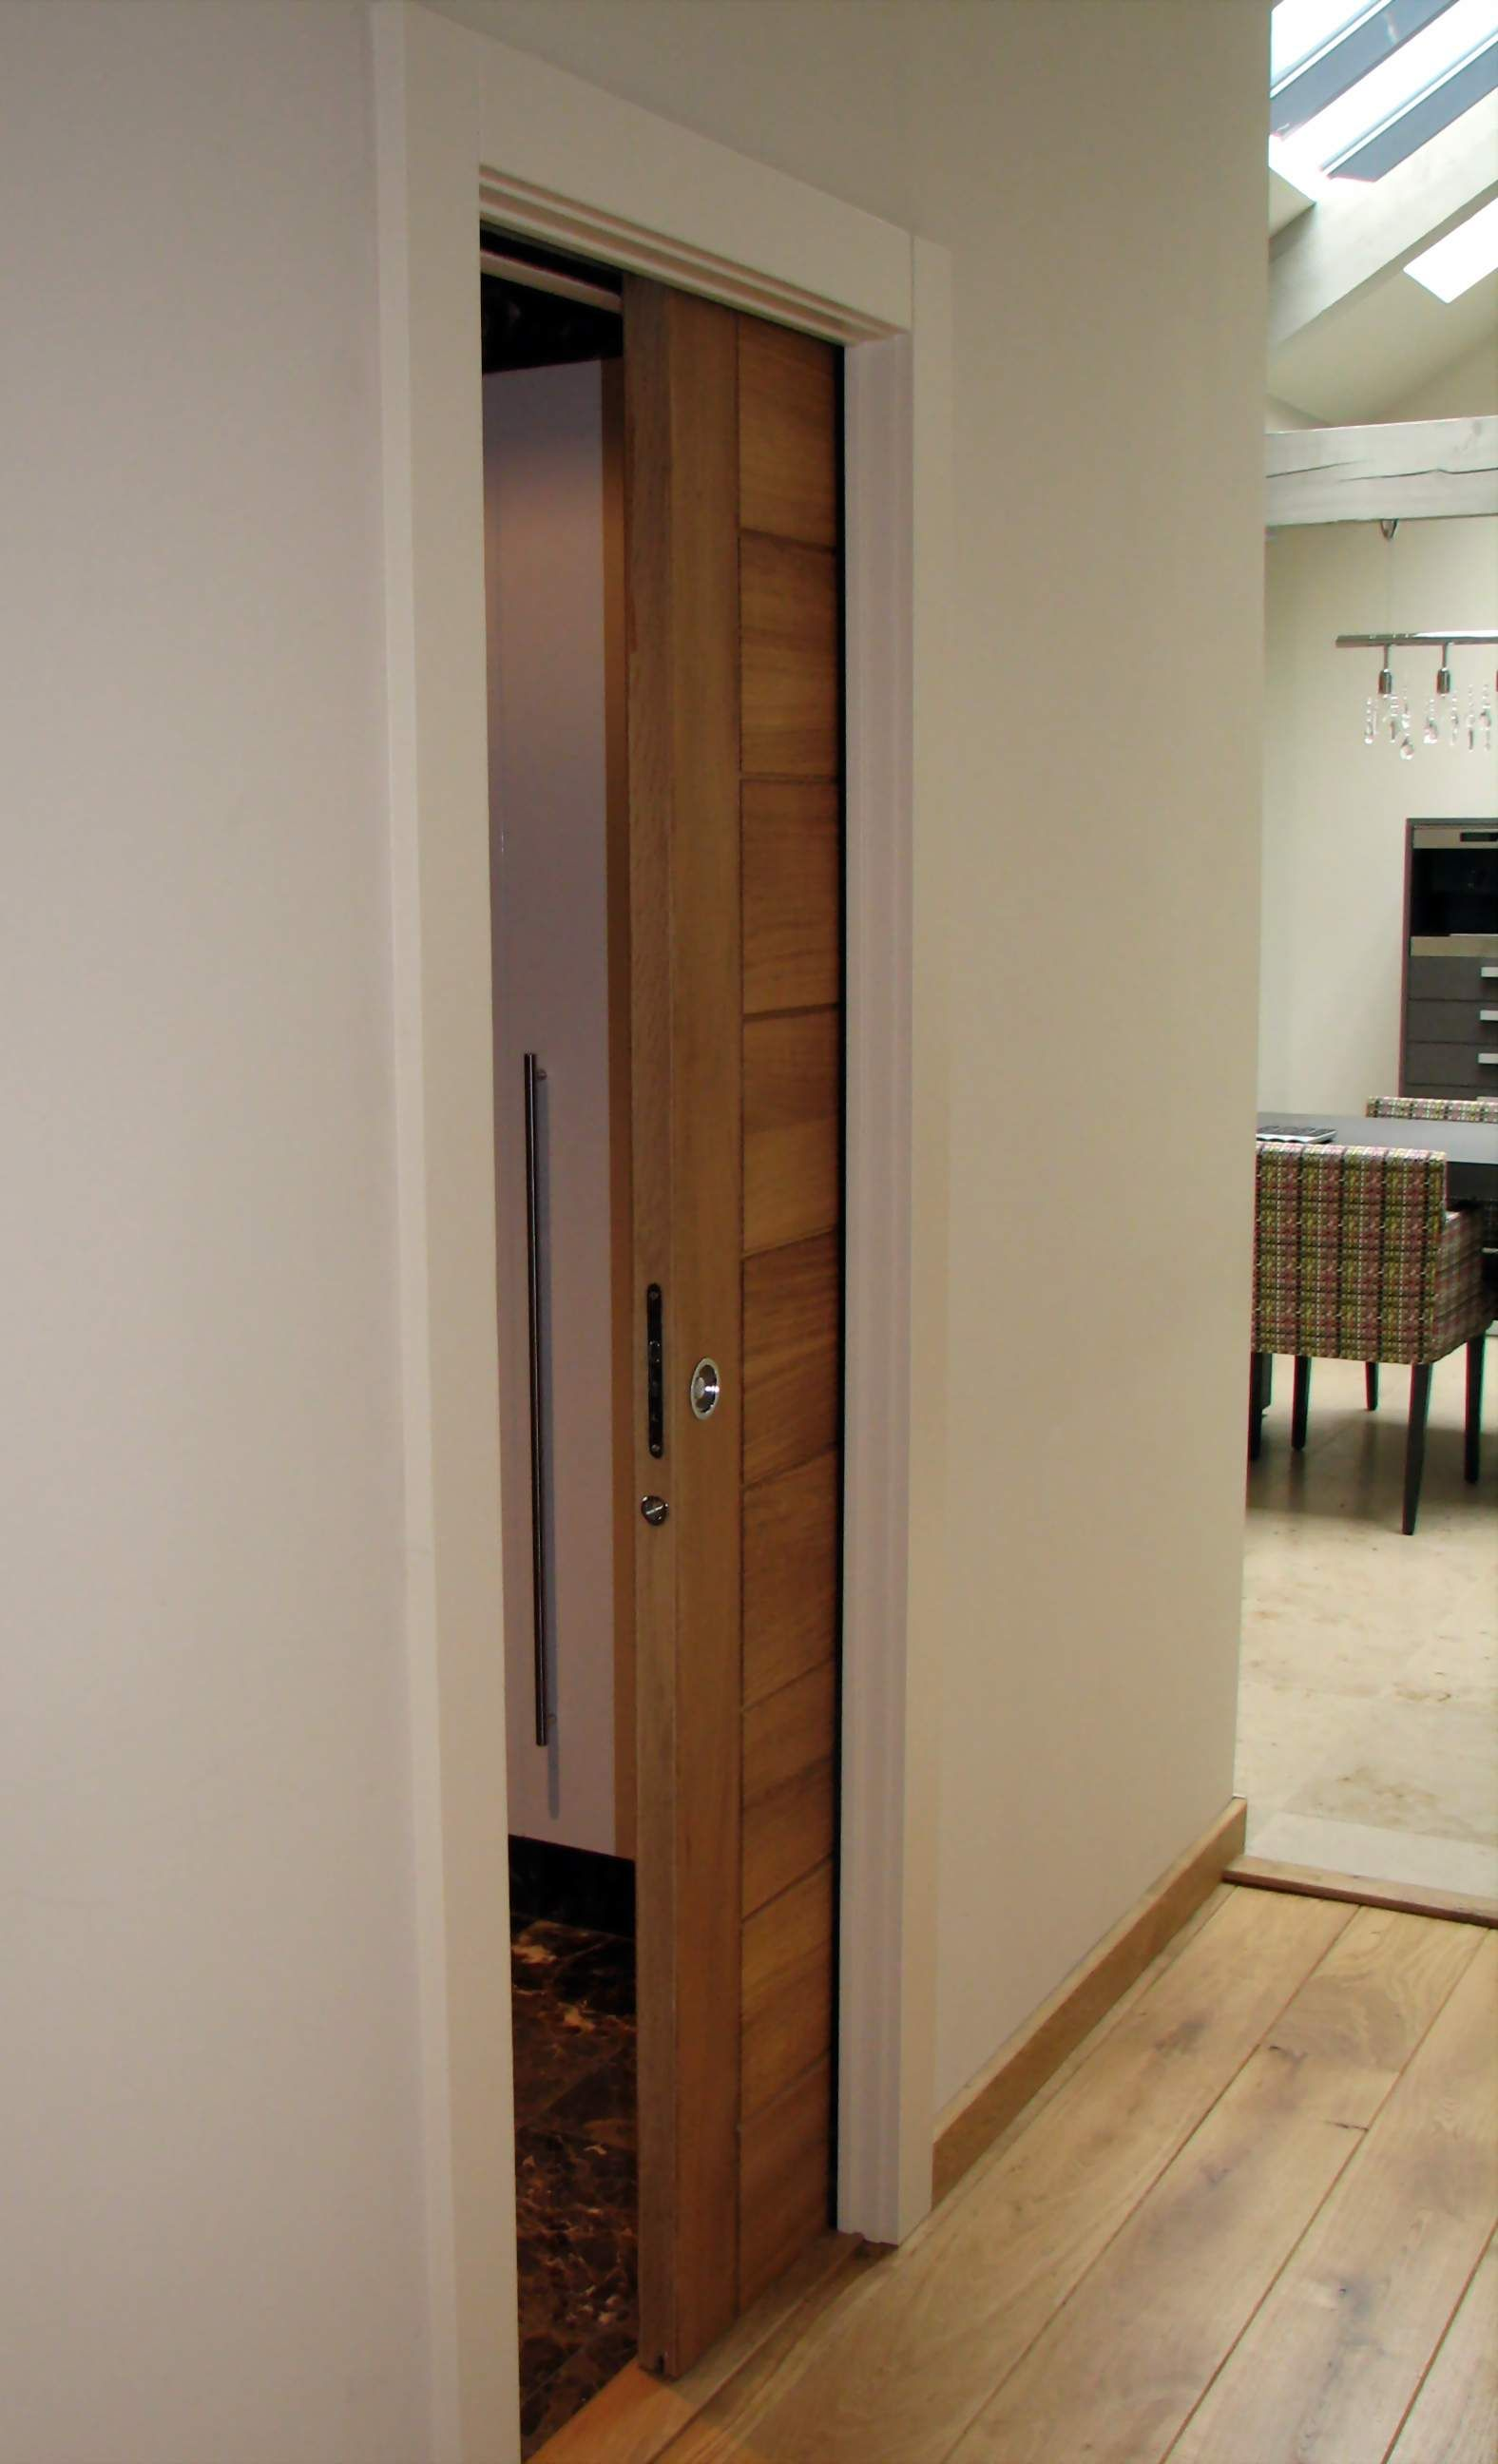 How to install a sliding bathroom door - Find This Pin And More On Versatility Of Sliding Barn Doors Single Eclisse Pocket Door Installed